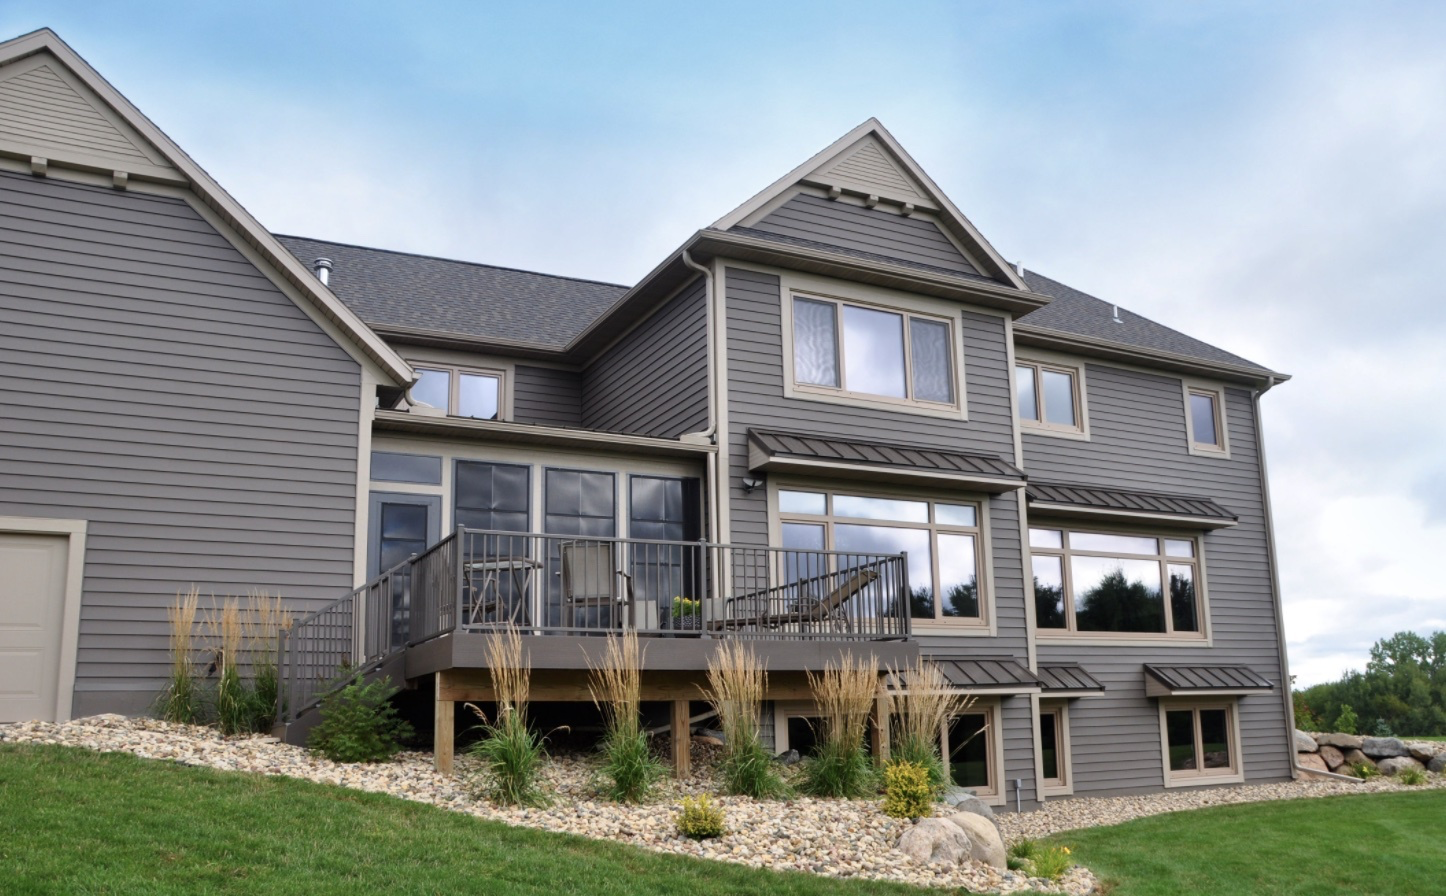 A Klauer Siding Designed Home in Rochester, MN